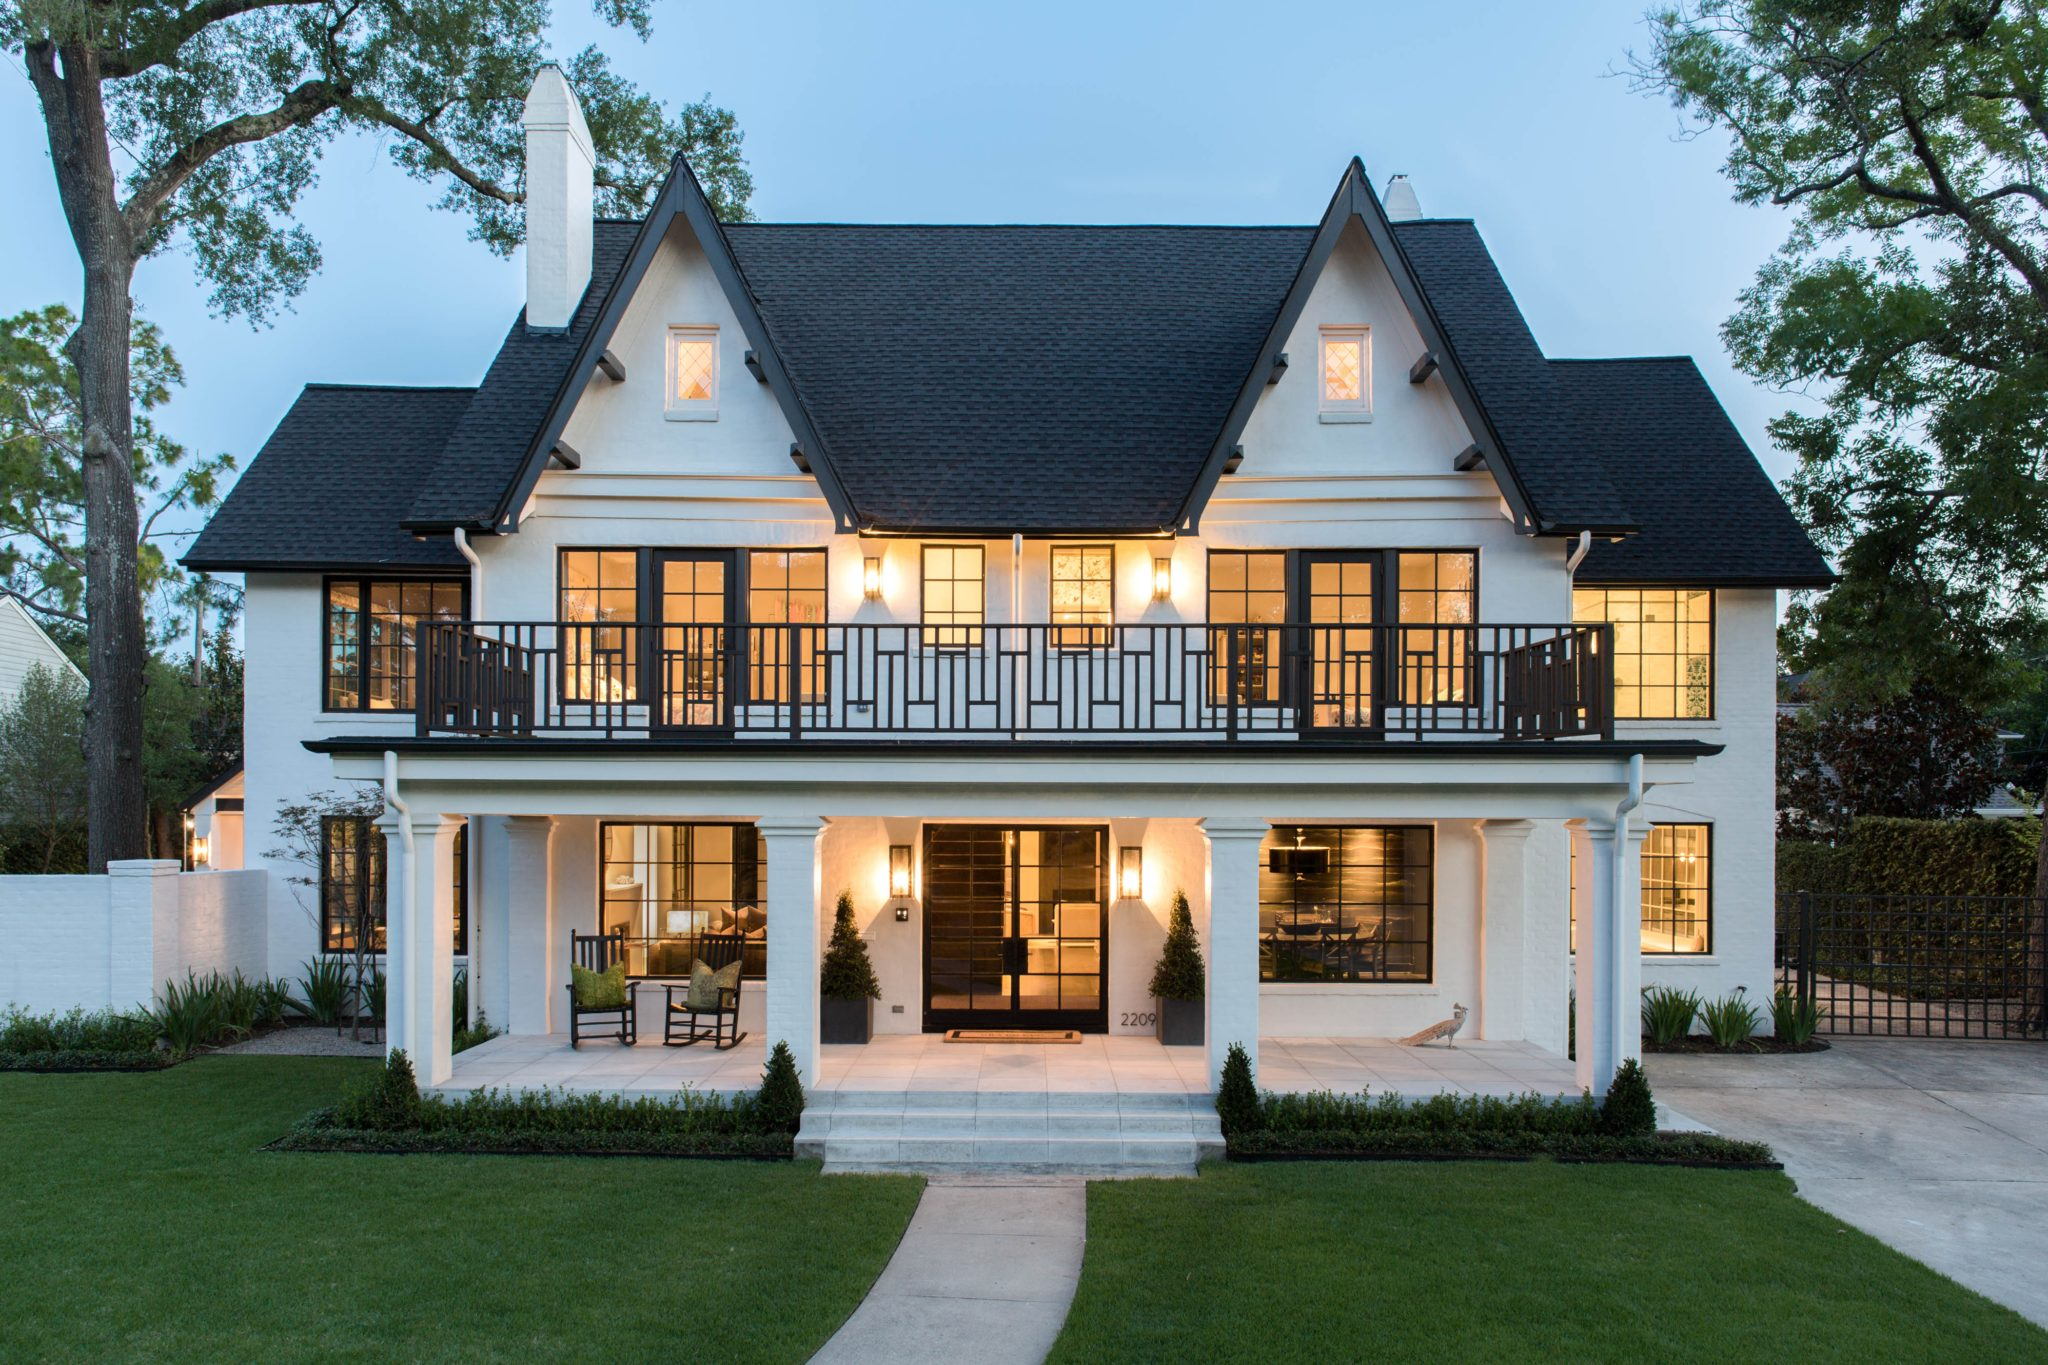 Traditional Tudor Made Modern - River Oaks - Houston, TX by Greer Interior Design